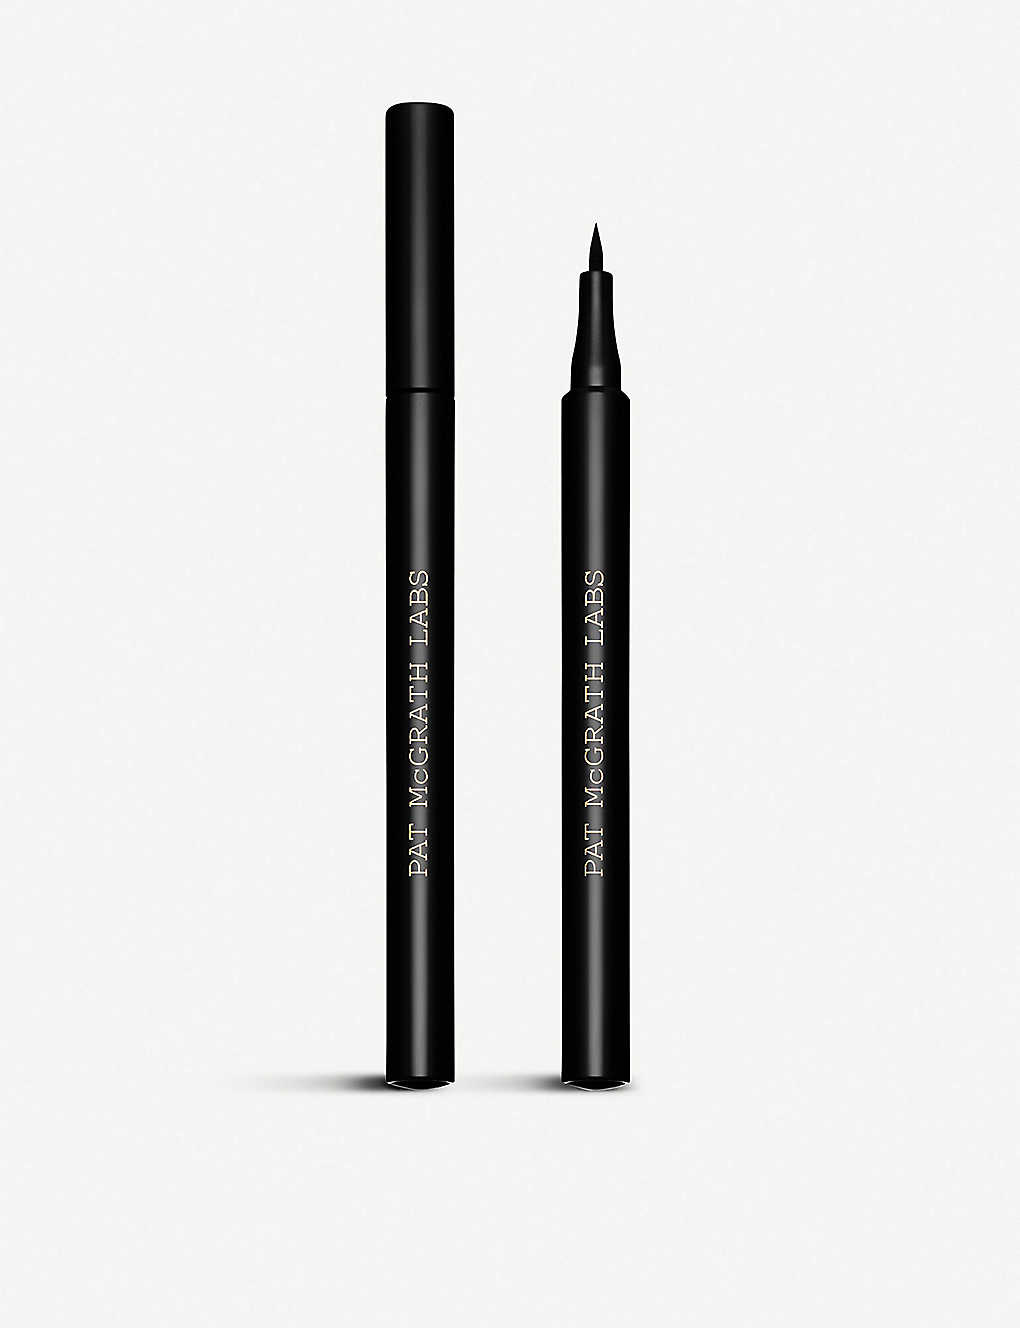 PAT MCGRATH LABS: Perma Precision Liquid Eyeliner